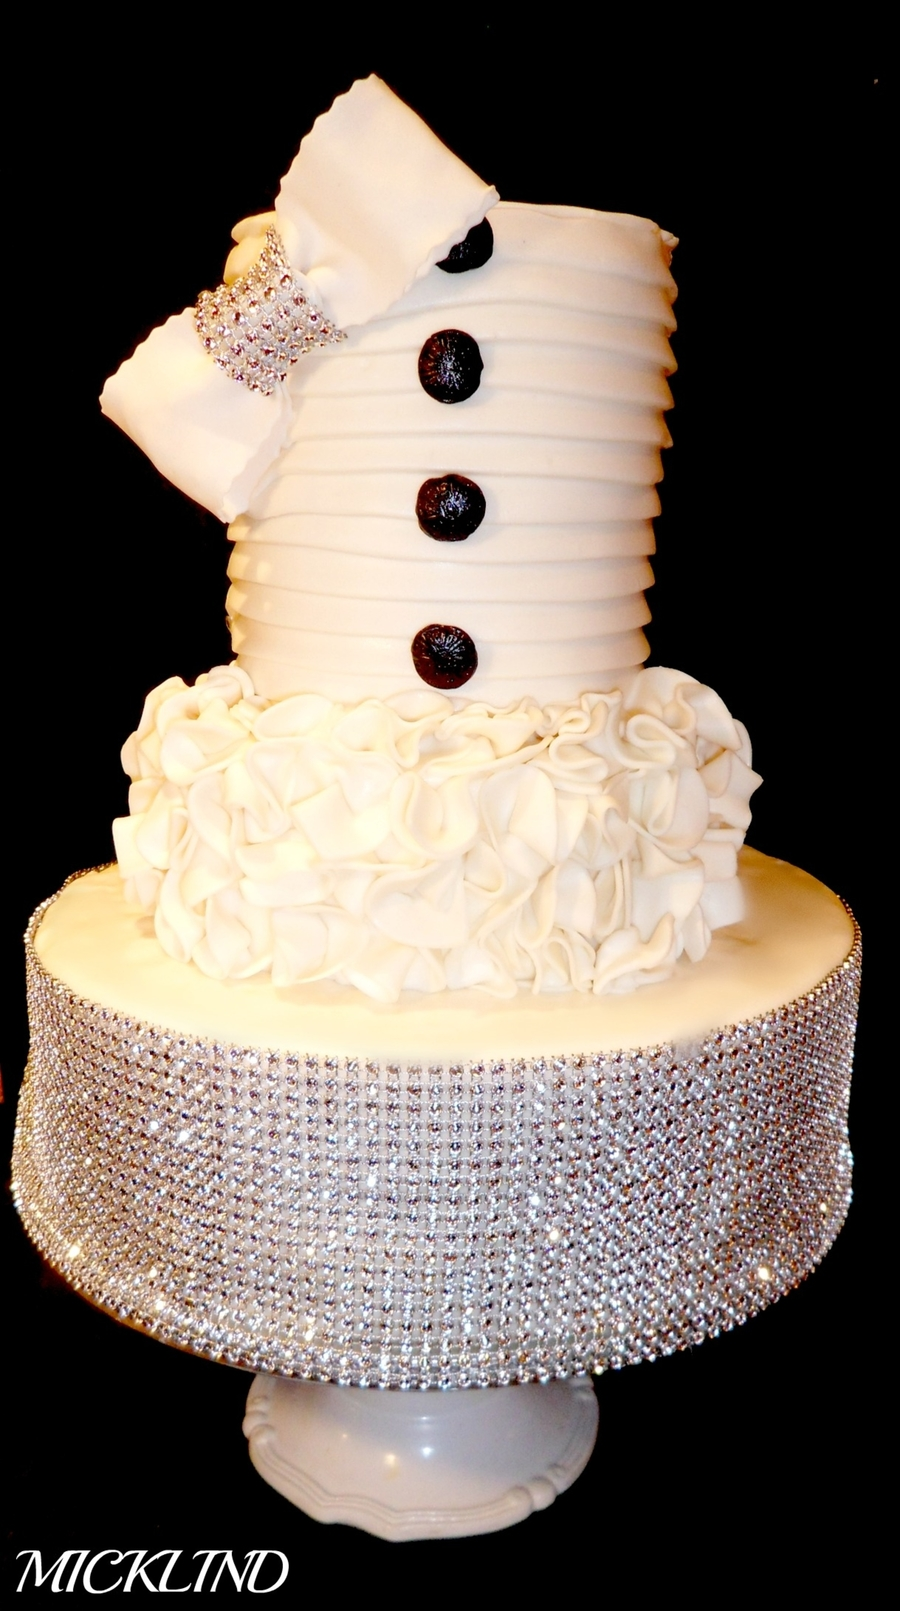 A Bling Wedding Cake  on Cake Central